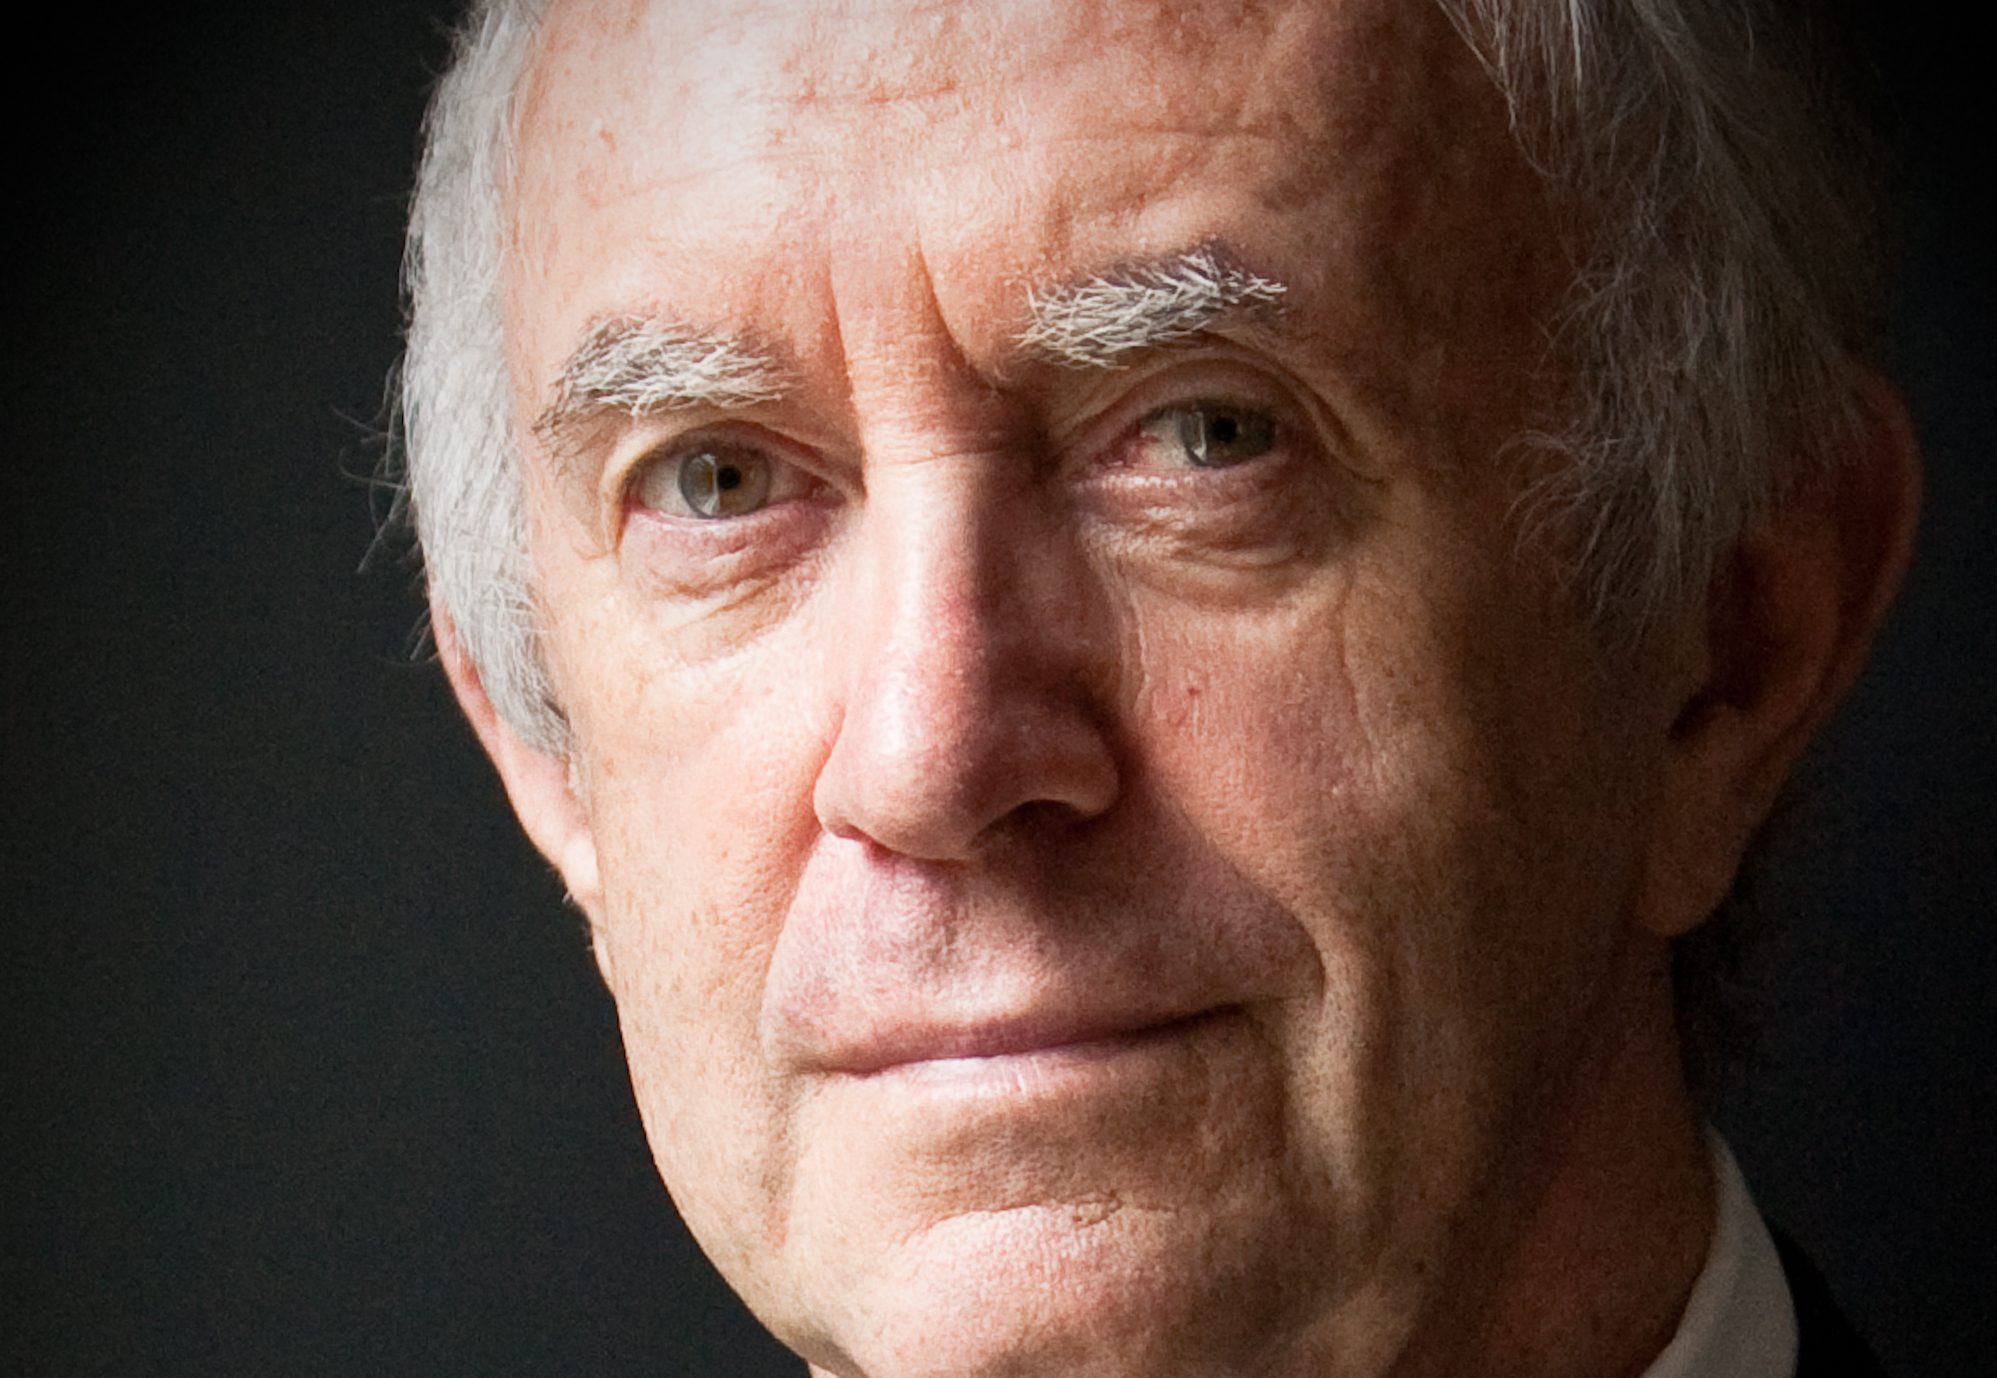 Publicity headshot of Jonathan Pryce for King Lear at the Almeida Theatre, 2012